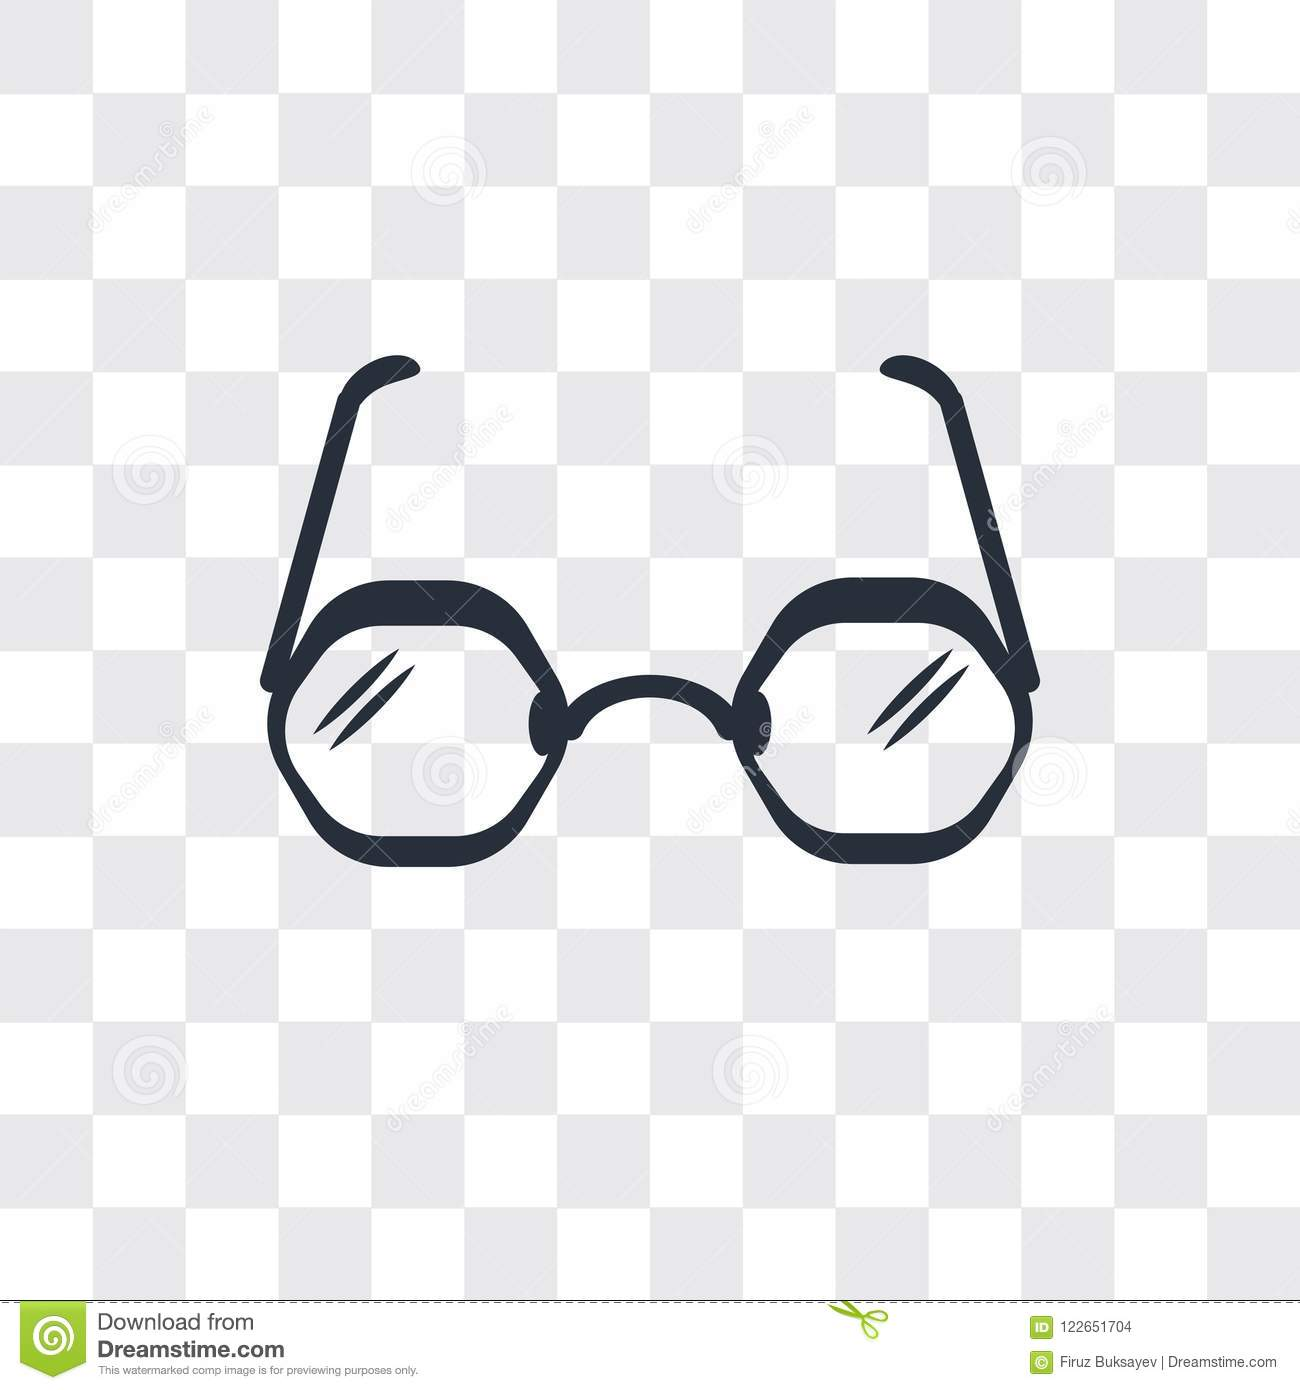 cd521e531a53 Round Eyeglasses Vector Icon Isolated On Transparent Background ...